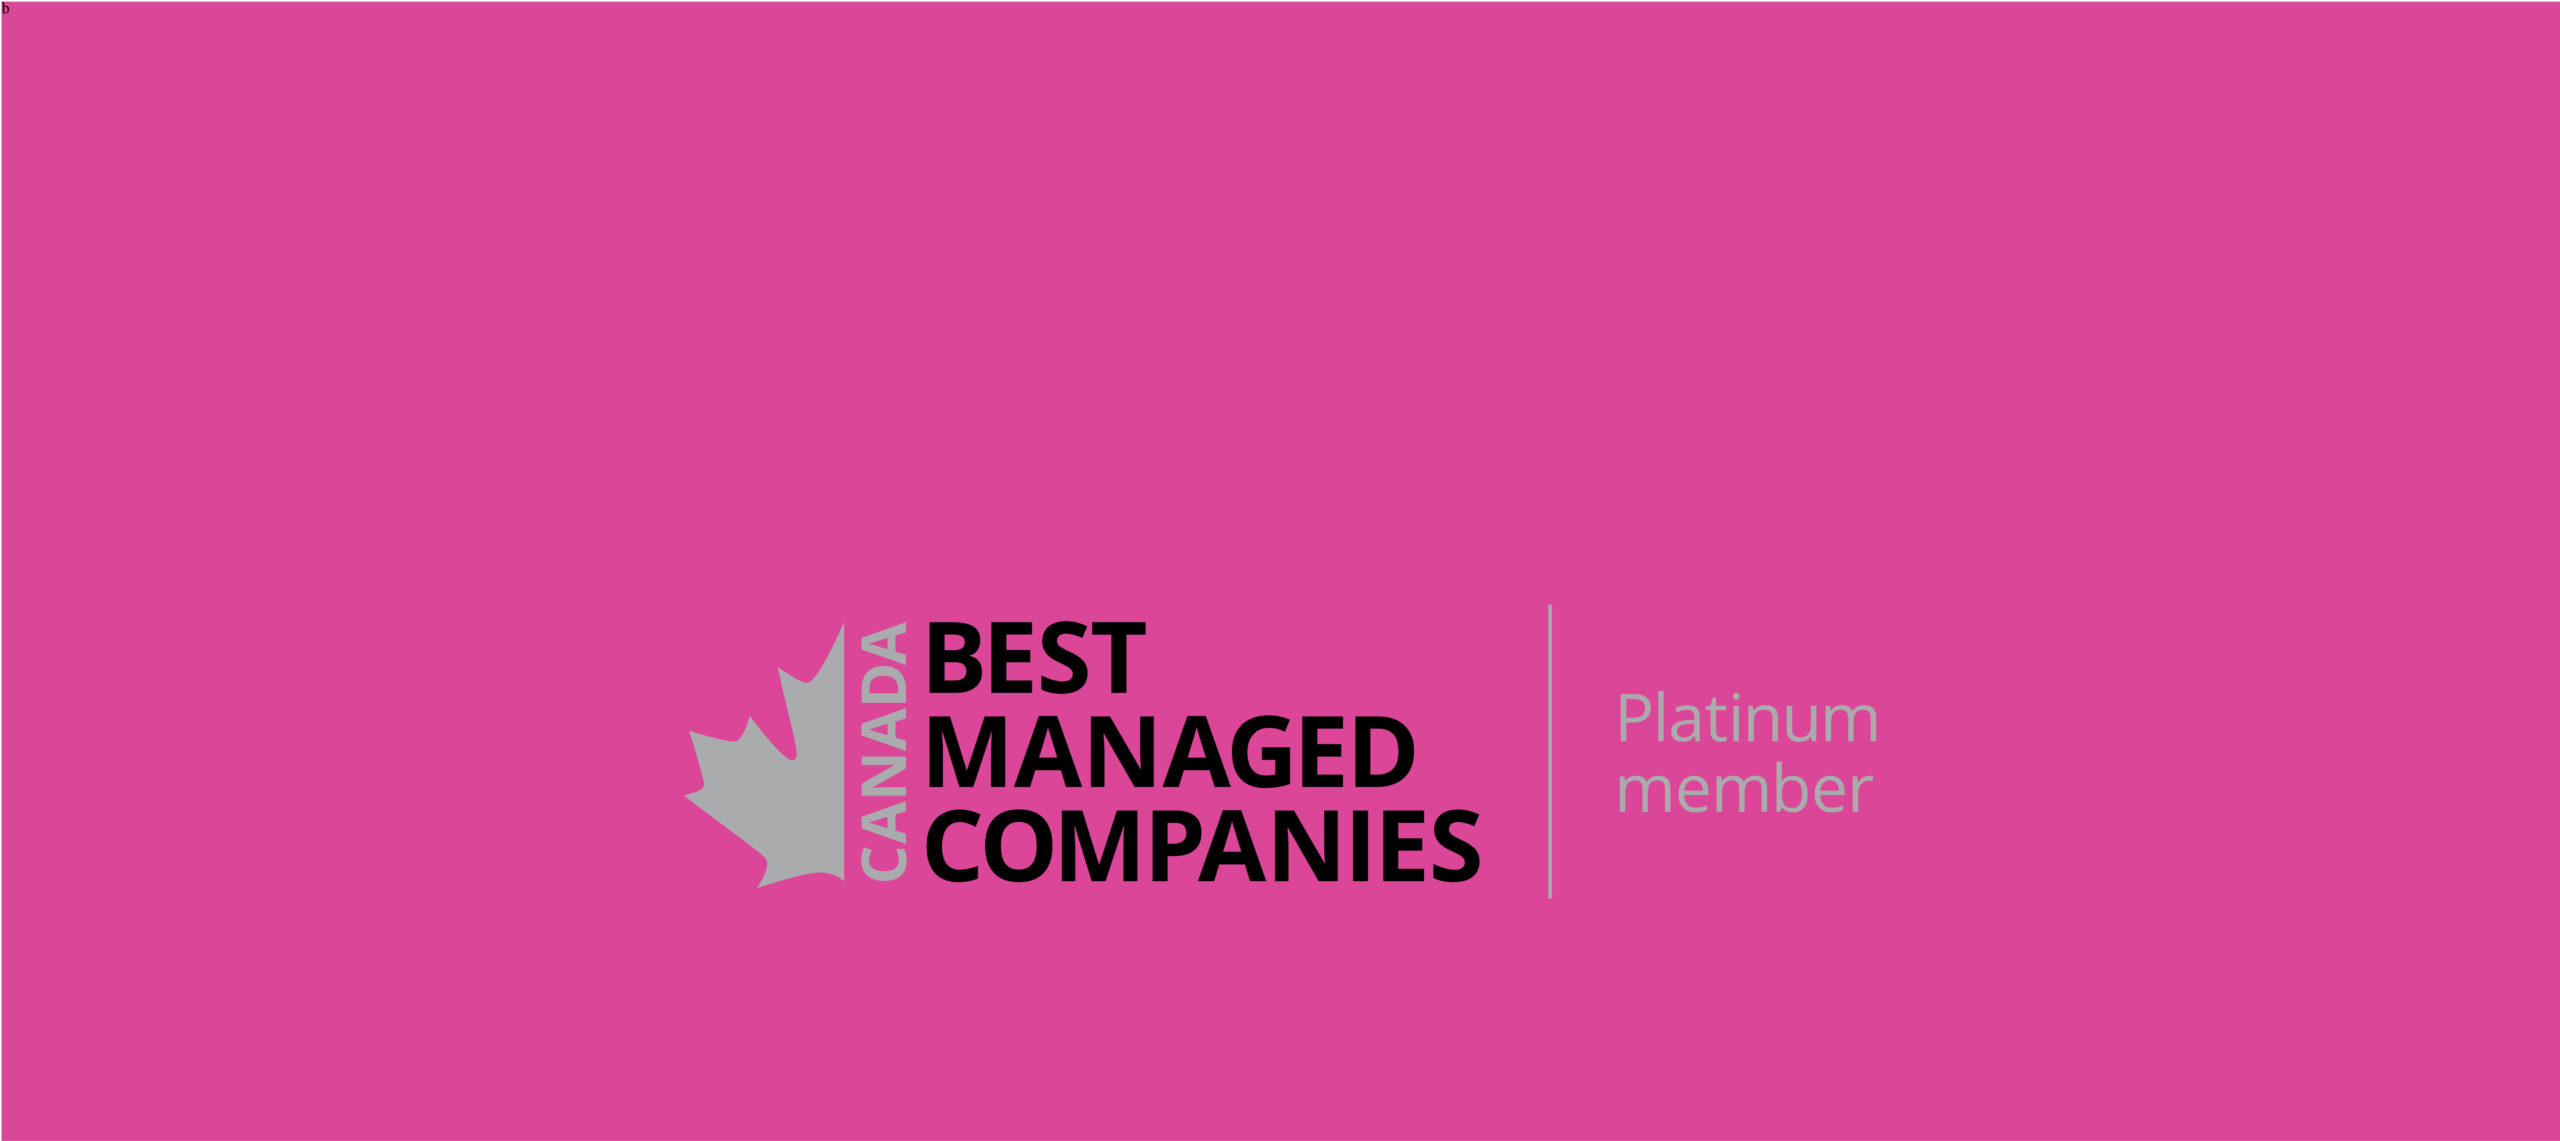 SJC Best Managed Companies